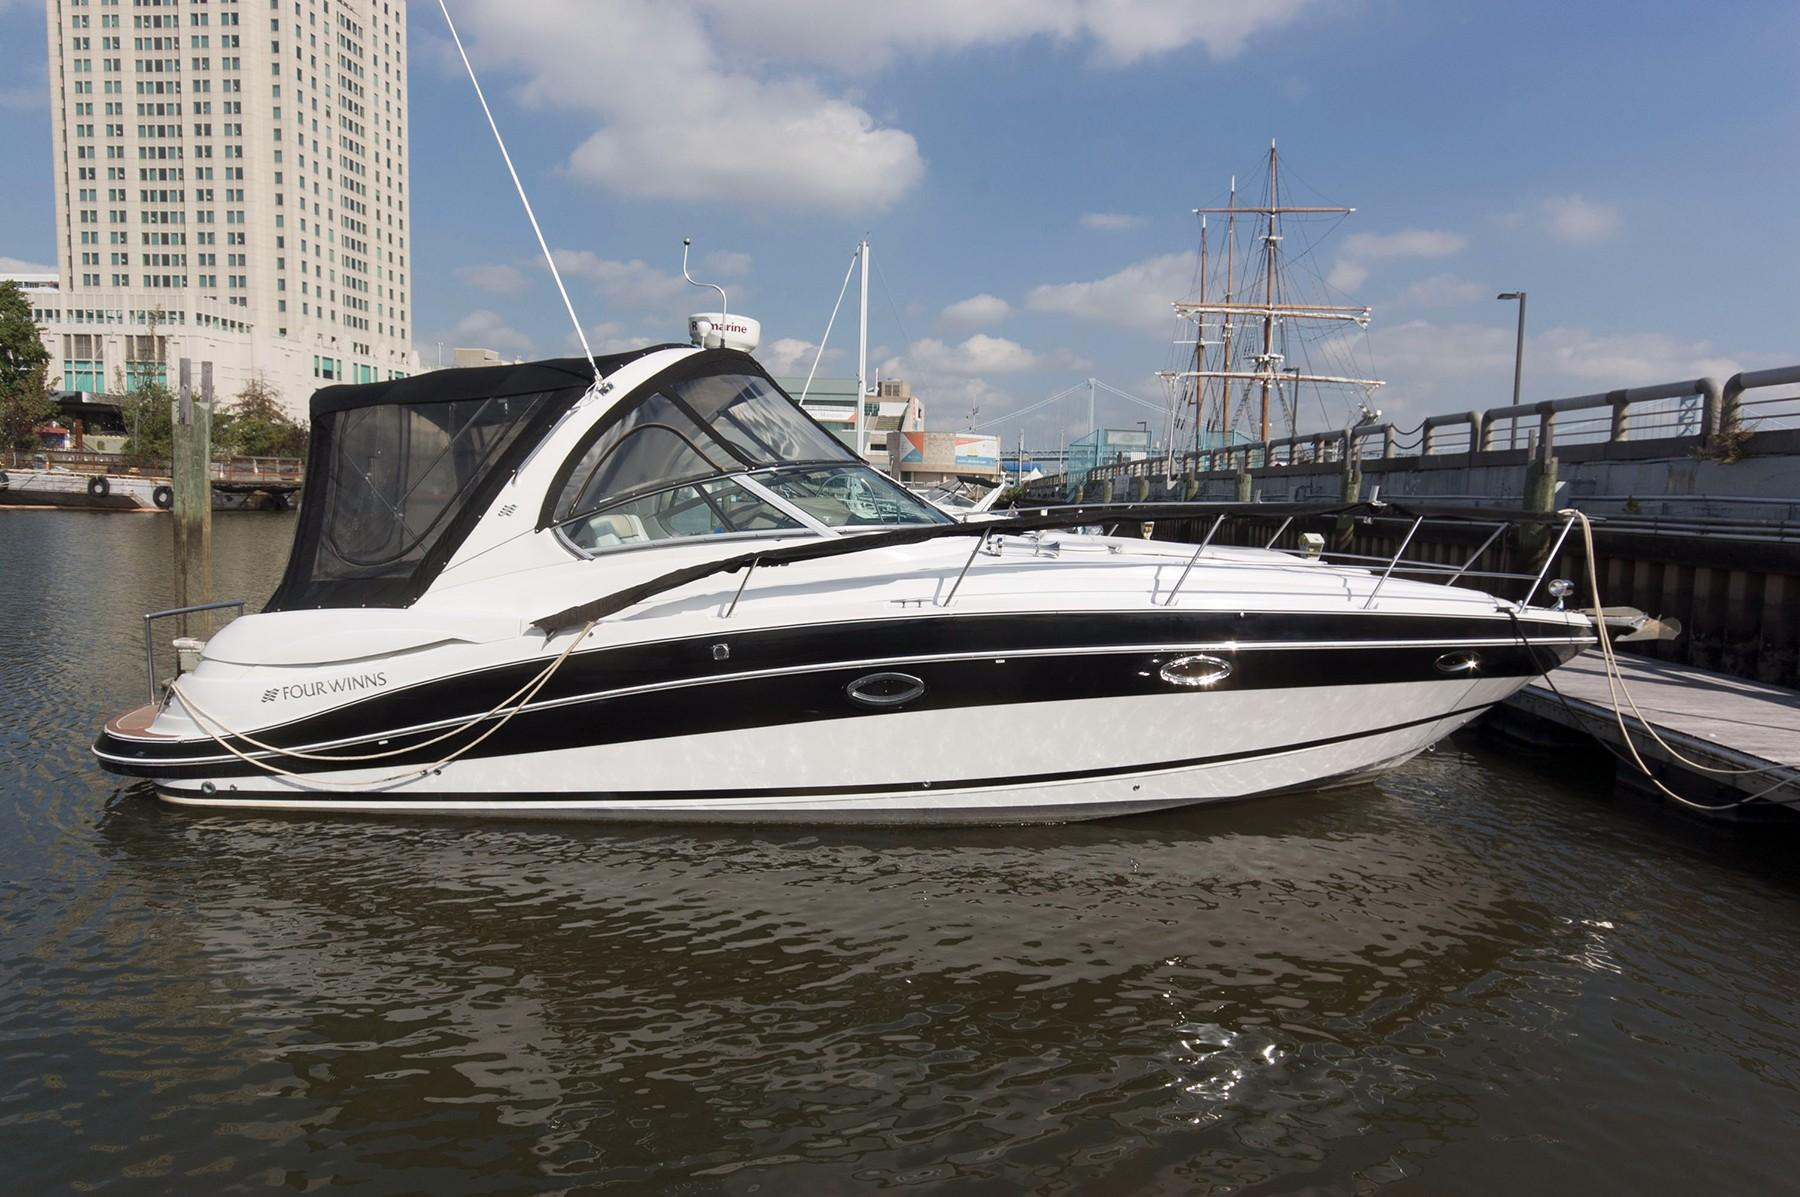 6386549_20171006162037250_1_XLARGE&w=520&h=346&t=1507335889000 search boats for sale yachtworld com  at alyssarenee.co